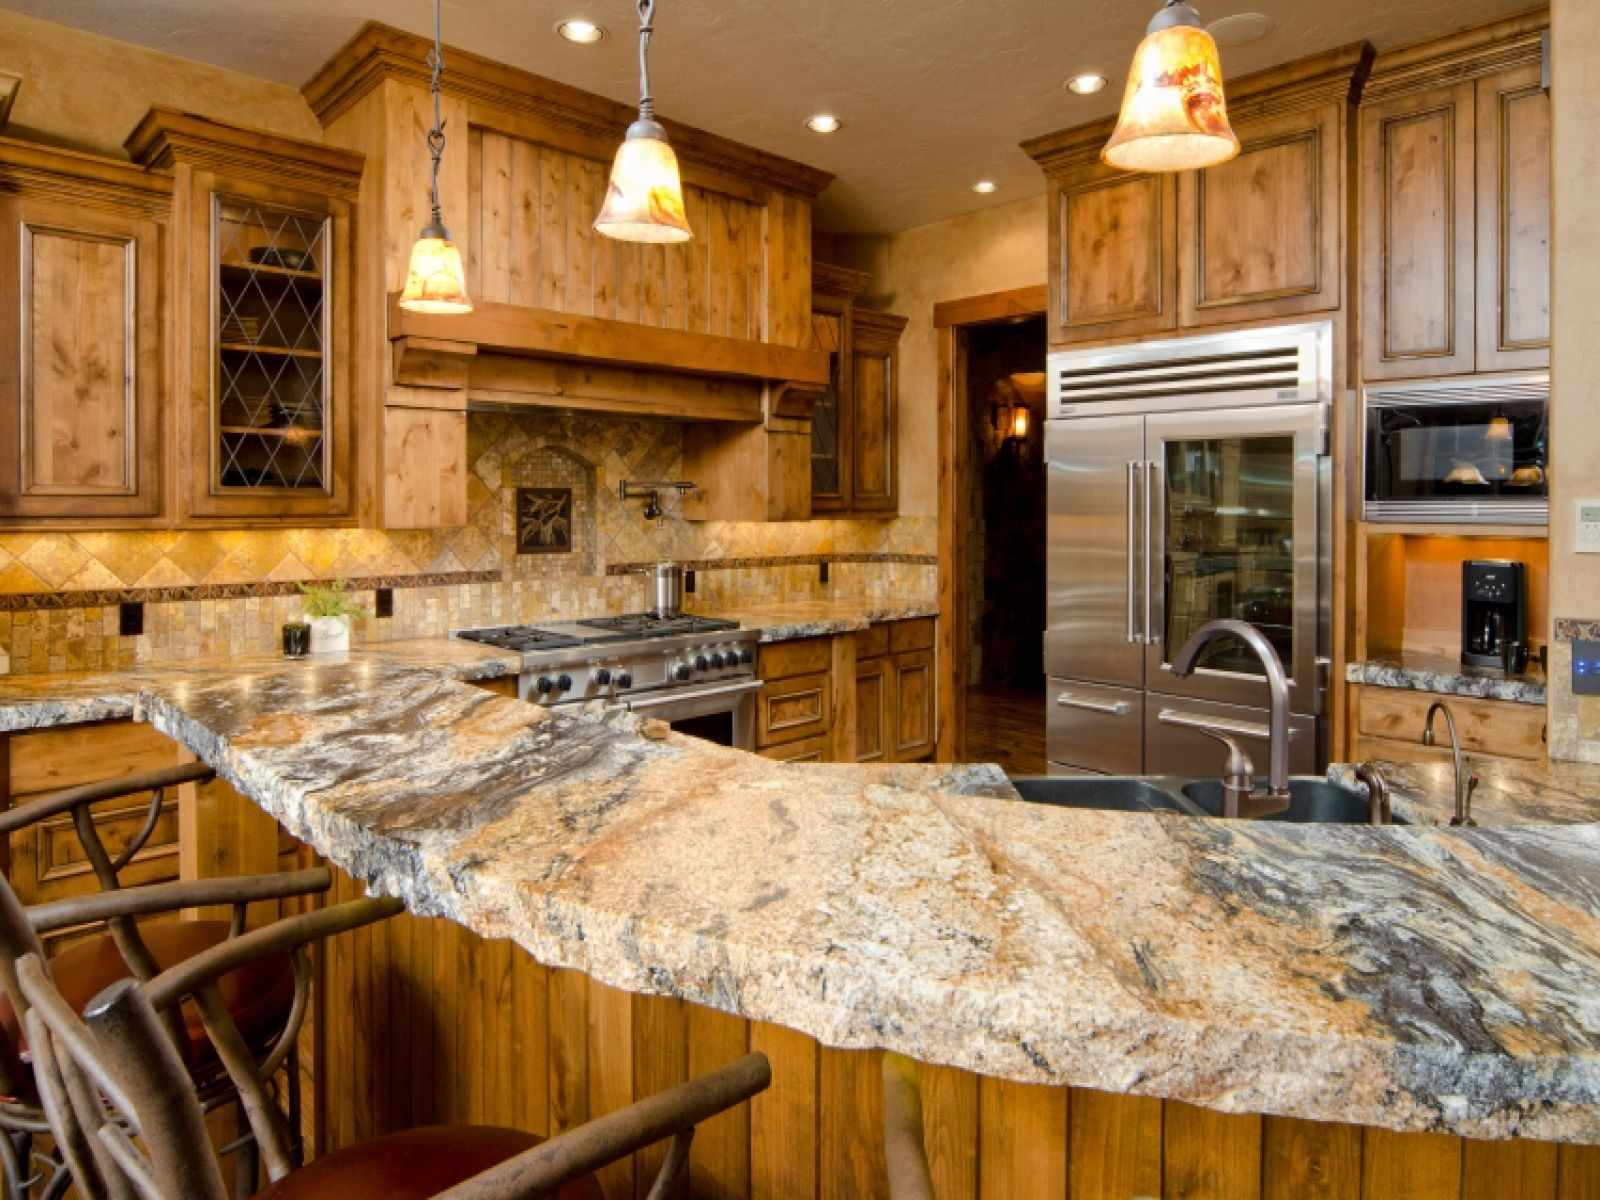 Kitchen Kitchen Granite Countertops And Help Designing Kitchen For Design  That Give Peace Of Mind As Your Dream Kitchen 15 Kitchen Granite Countertops  In ...